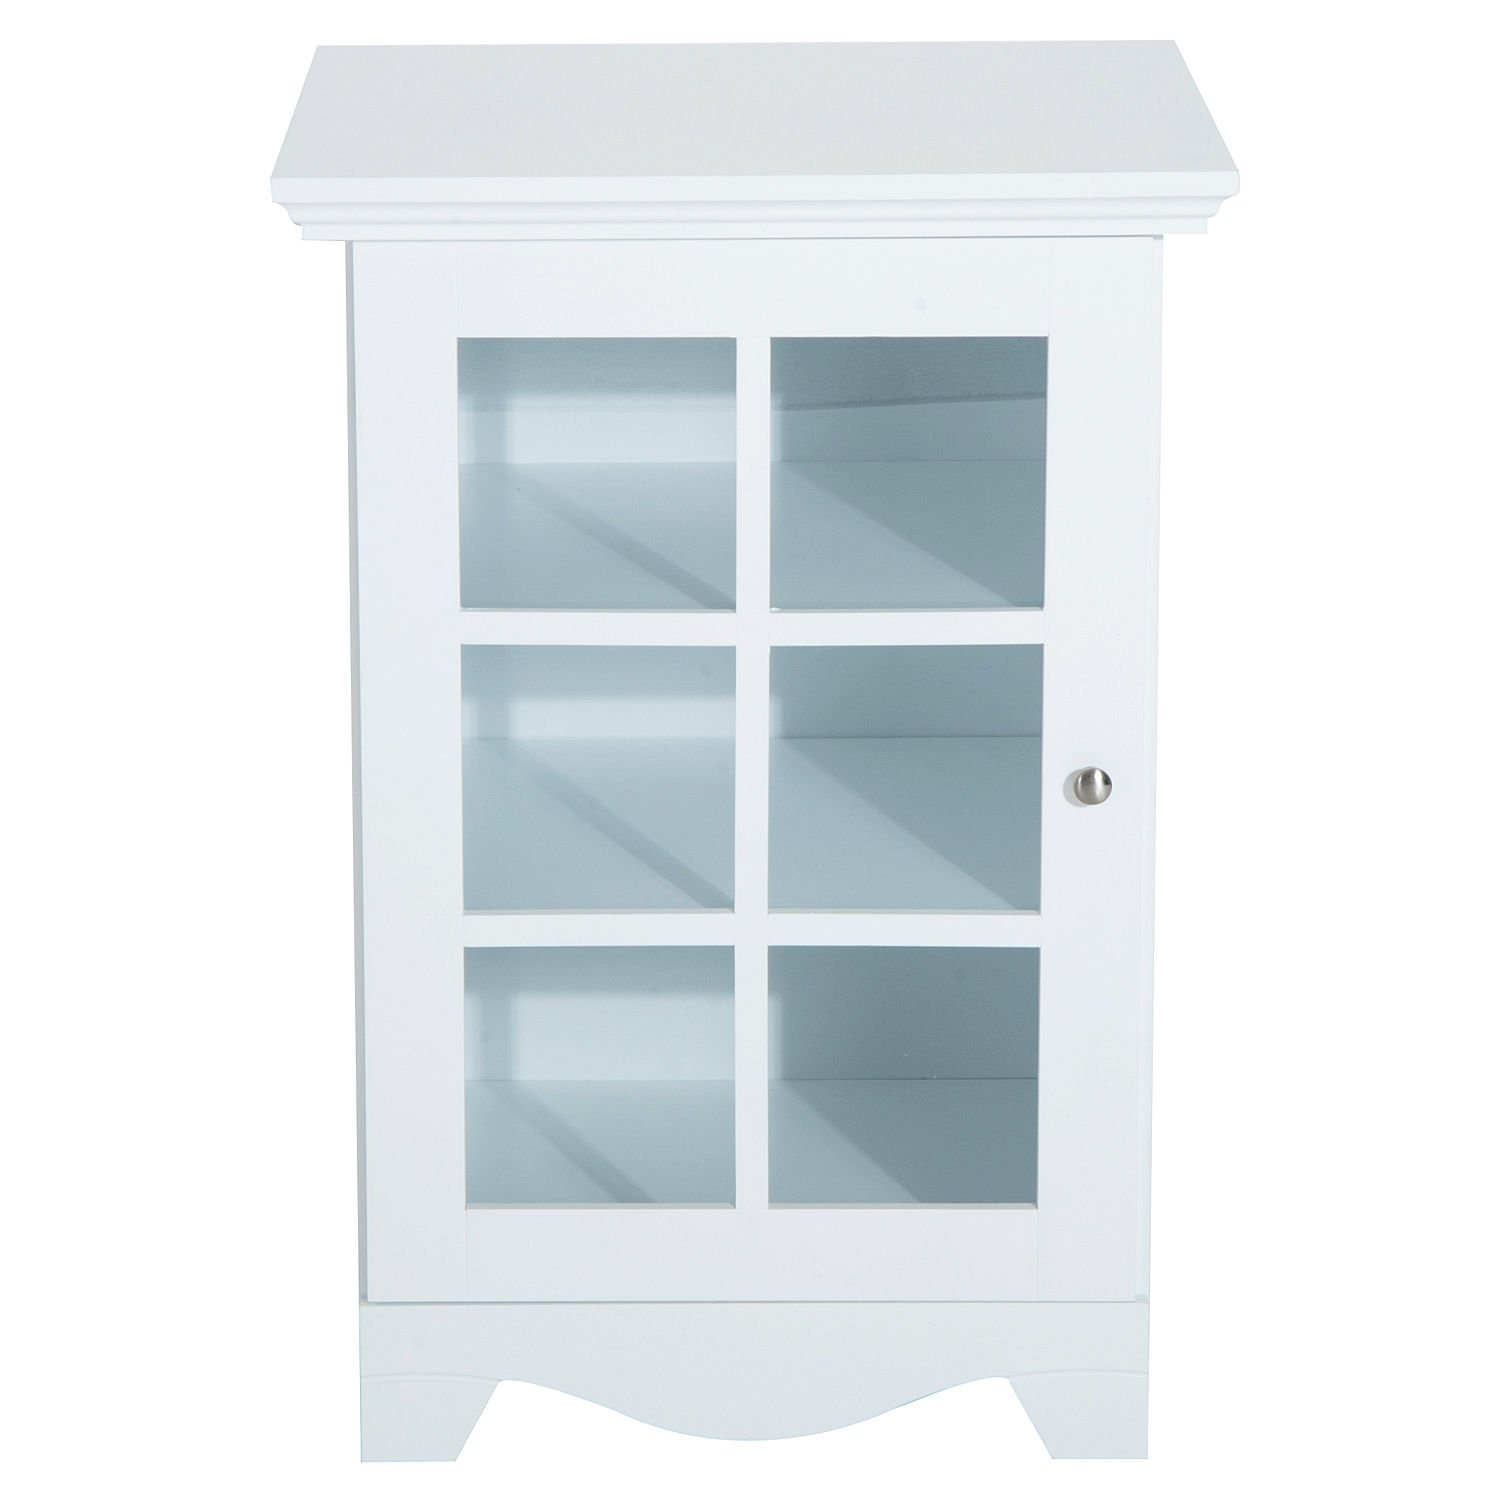 New White Wood Cabinet Storage Hutch Kitchen Bathroom Bedroom Single Glassed Door Shelves by totoshop (Image #1)